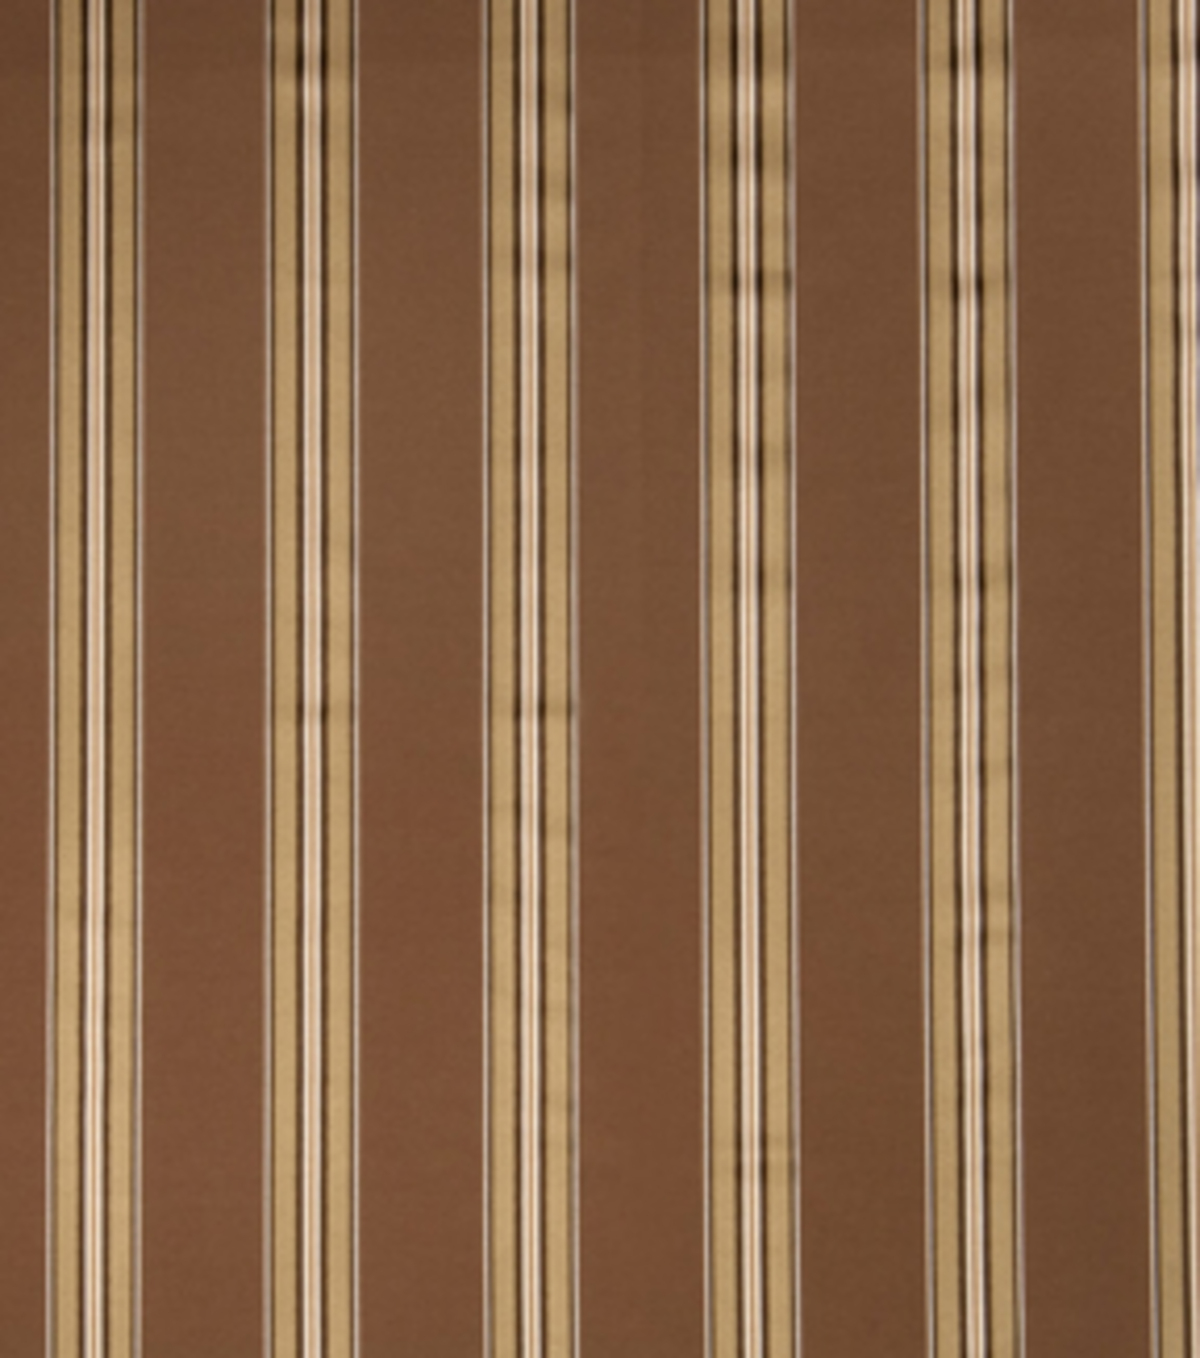 Home Decor 8\u0022x8\u0022 Fabric Swatch-Print Fabric Eaton Square Drumline Caf